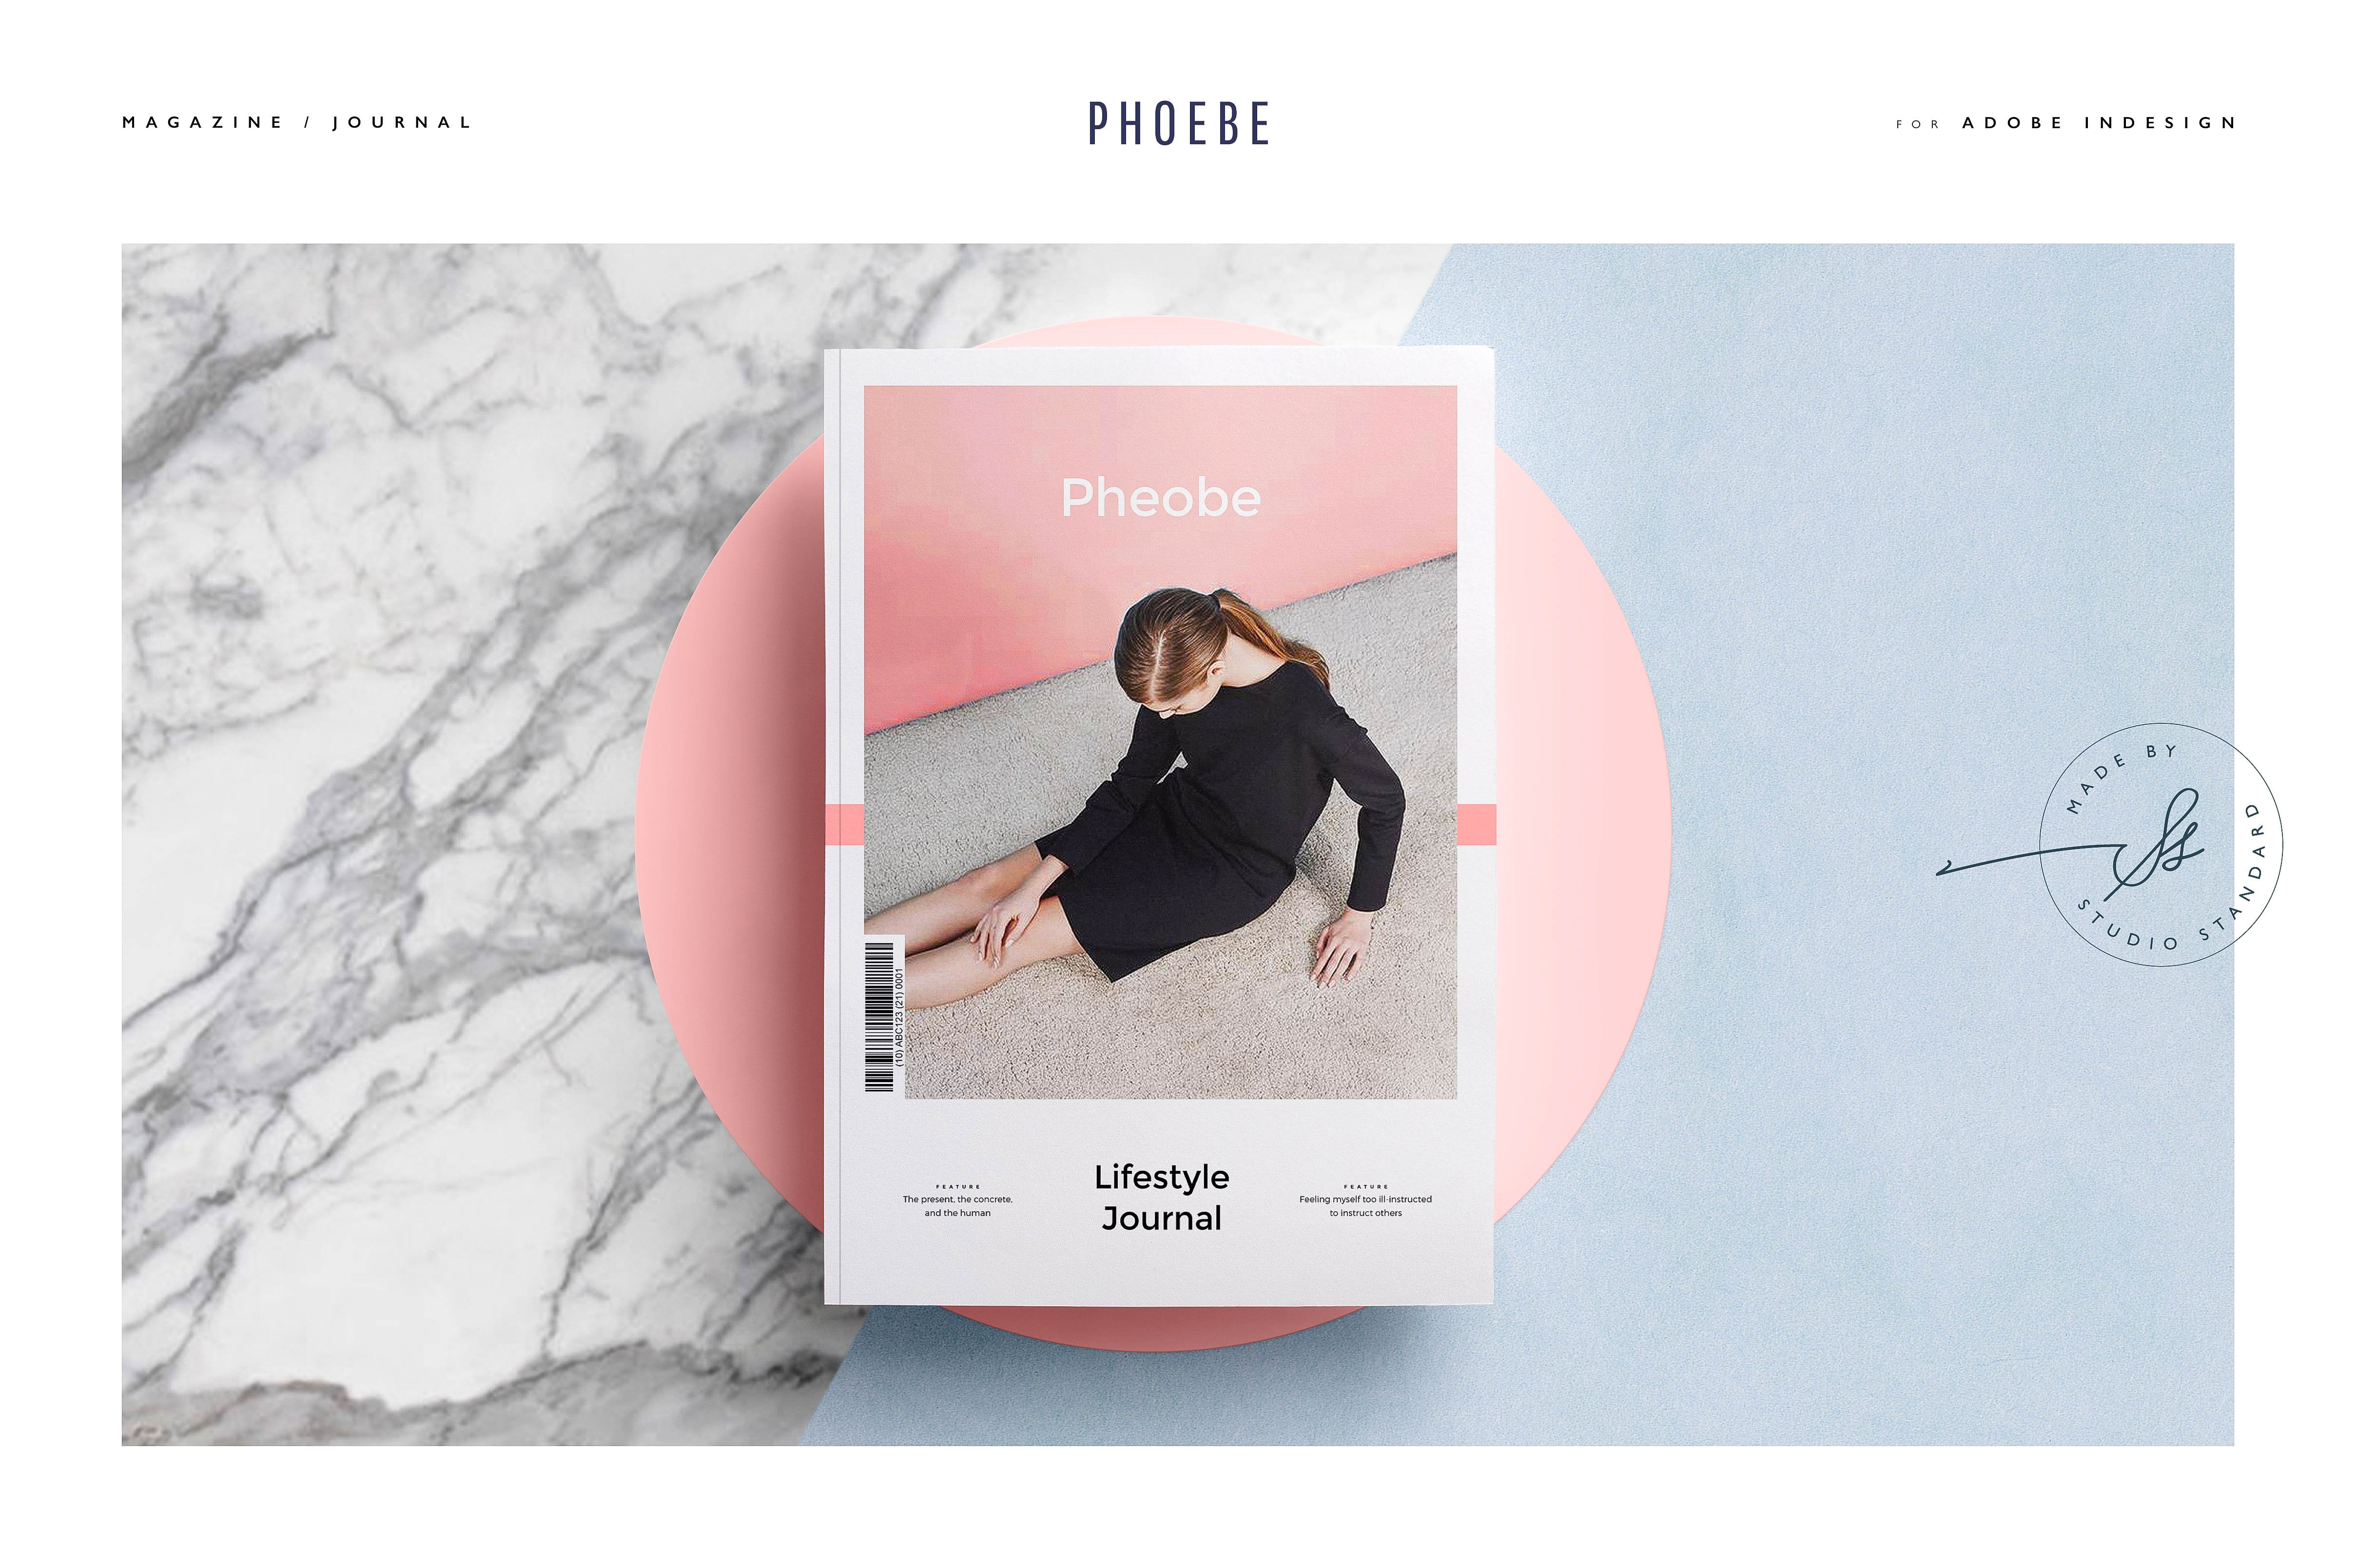 Phoebe magazine magazine templates creative market for Free architecture magazines